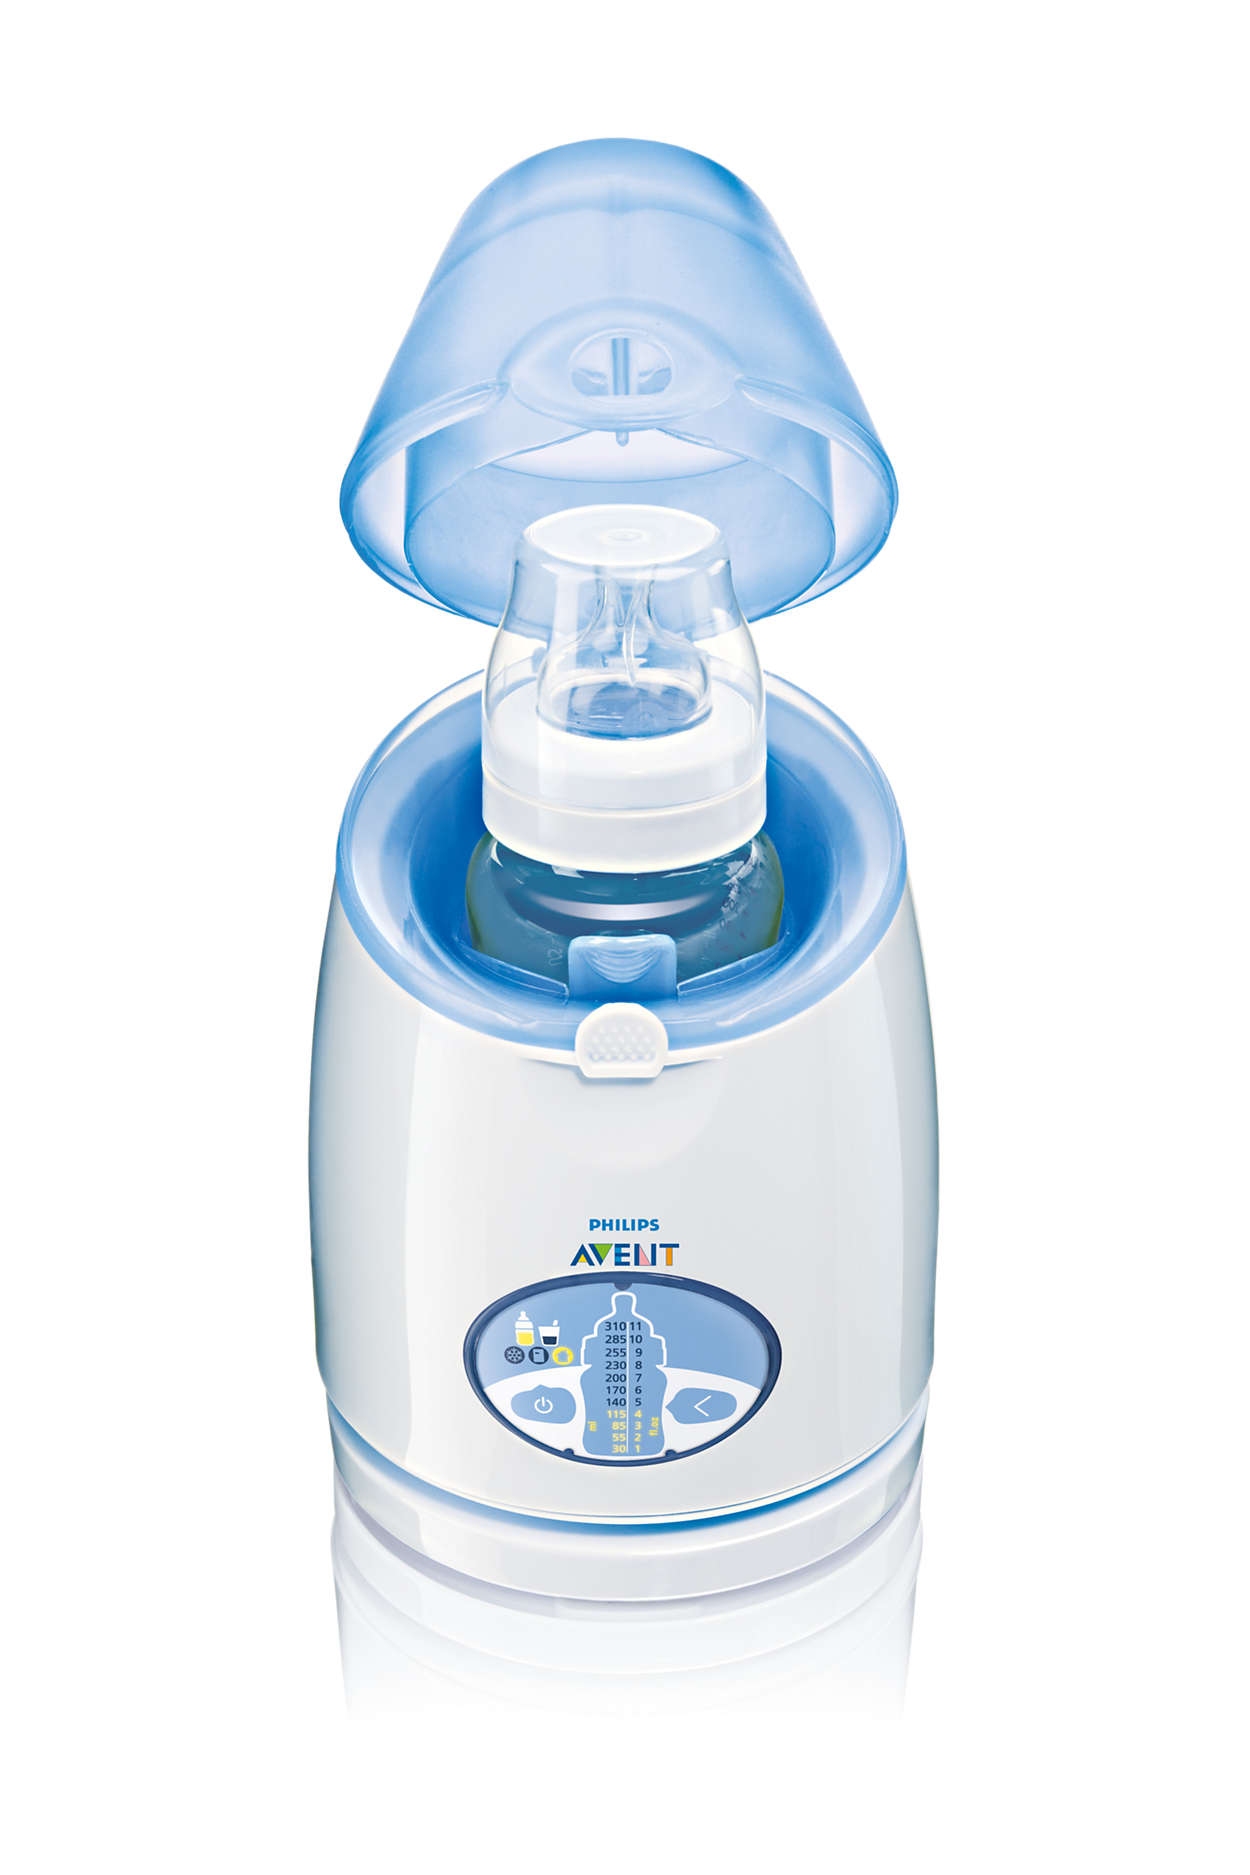 Digital Bottle Warmer Scf260 34 Avent